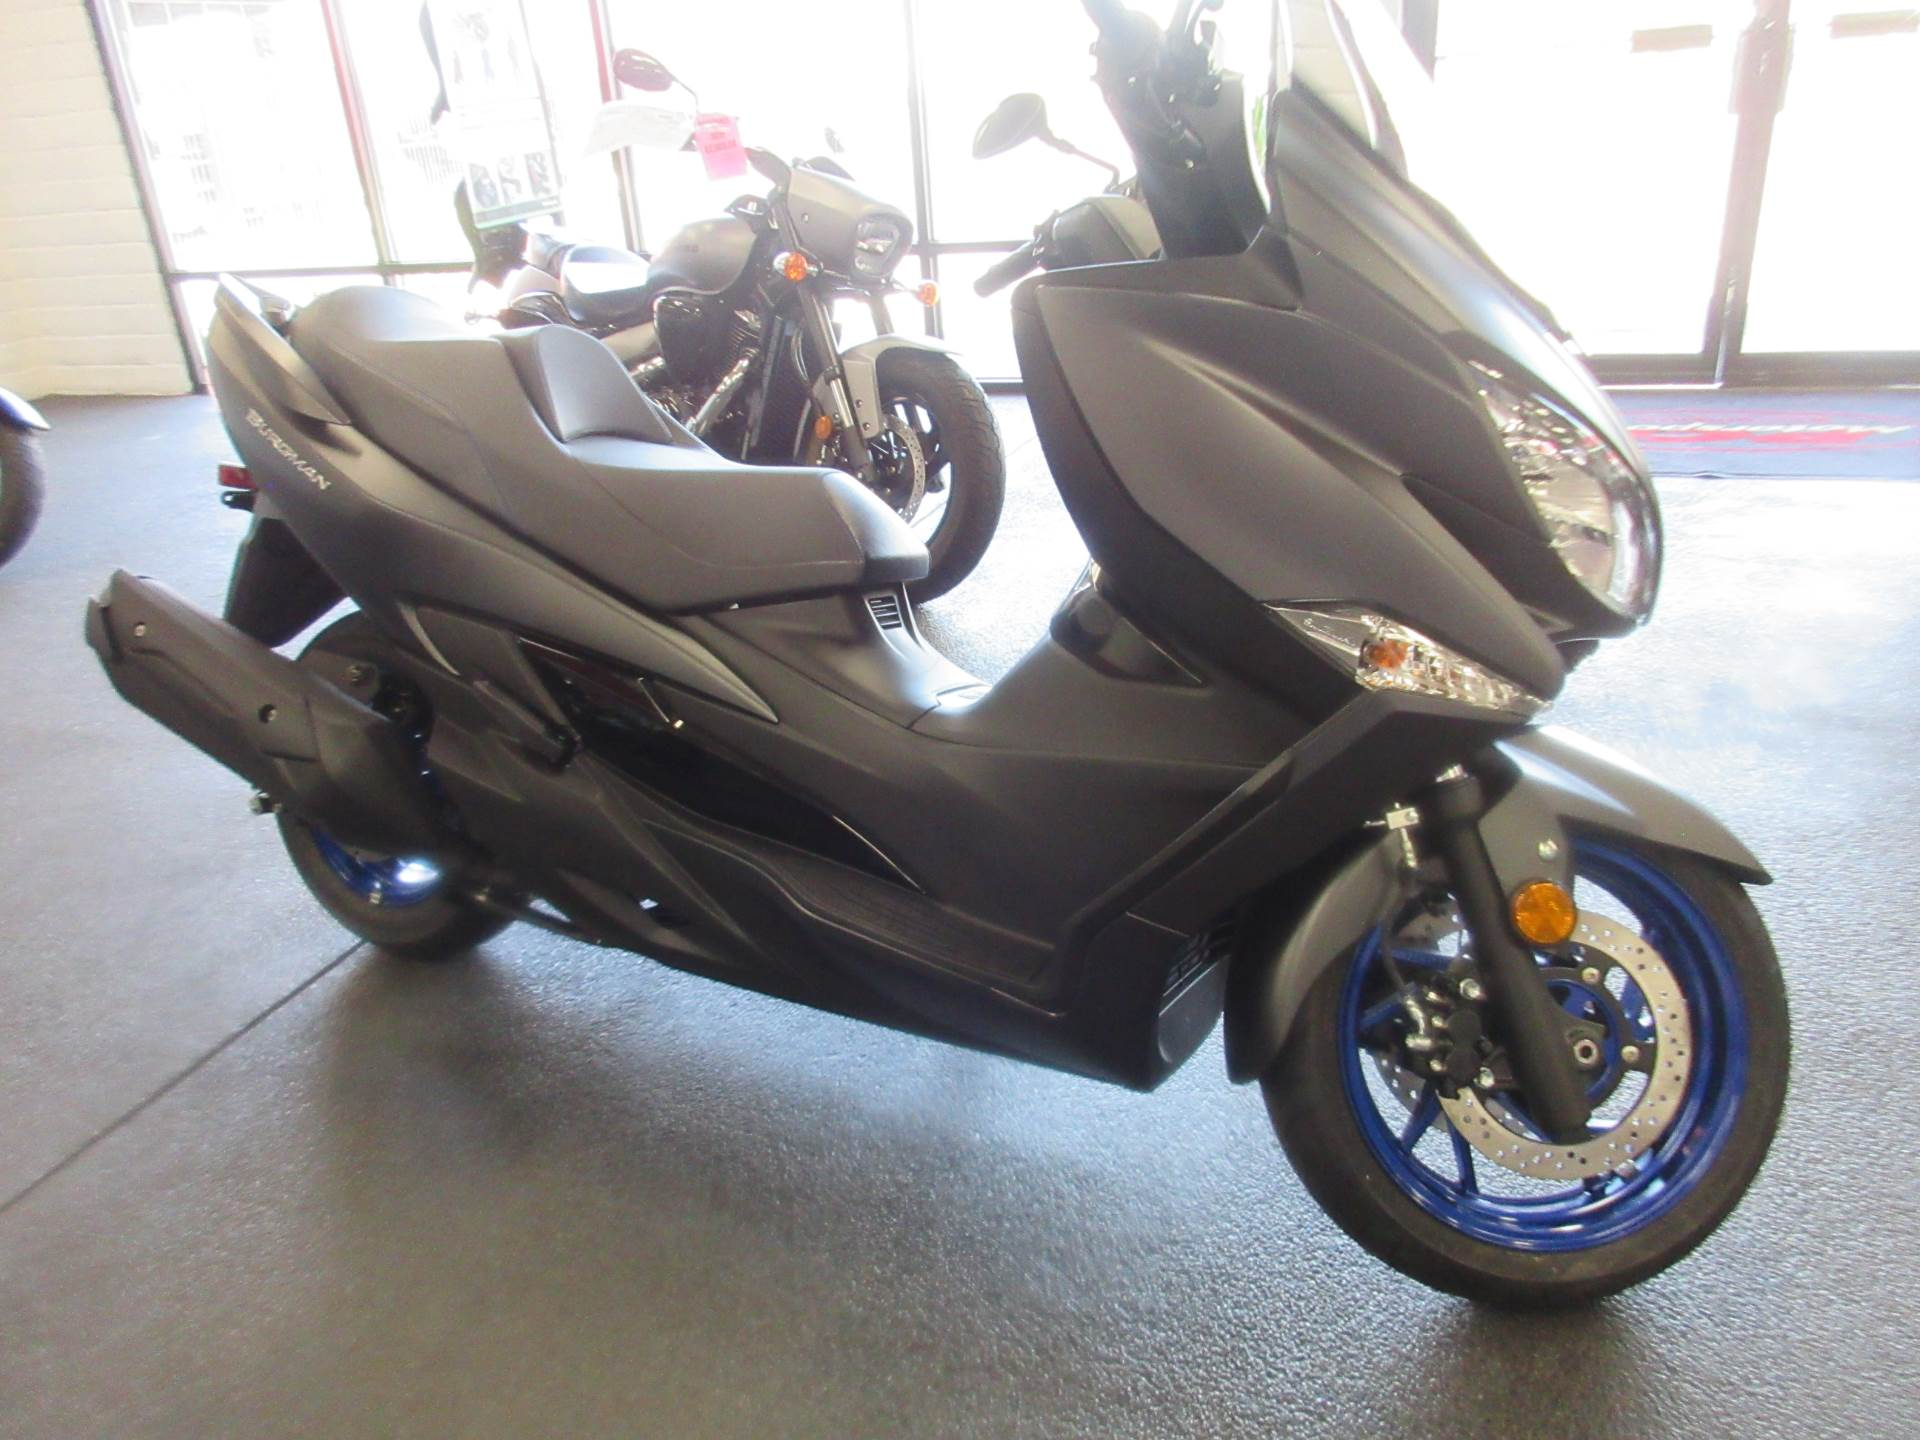 2020 Suzuki Burgman 400 in Sacramento, California - Photo 1